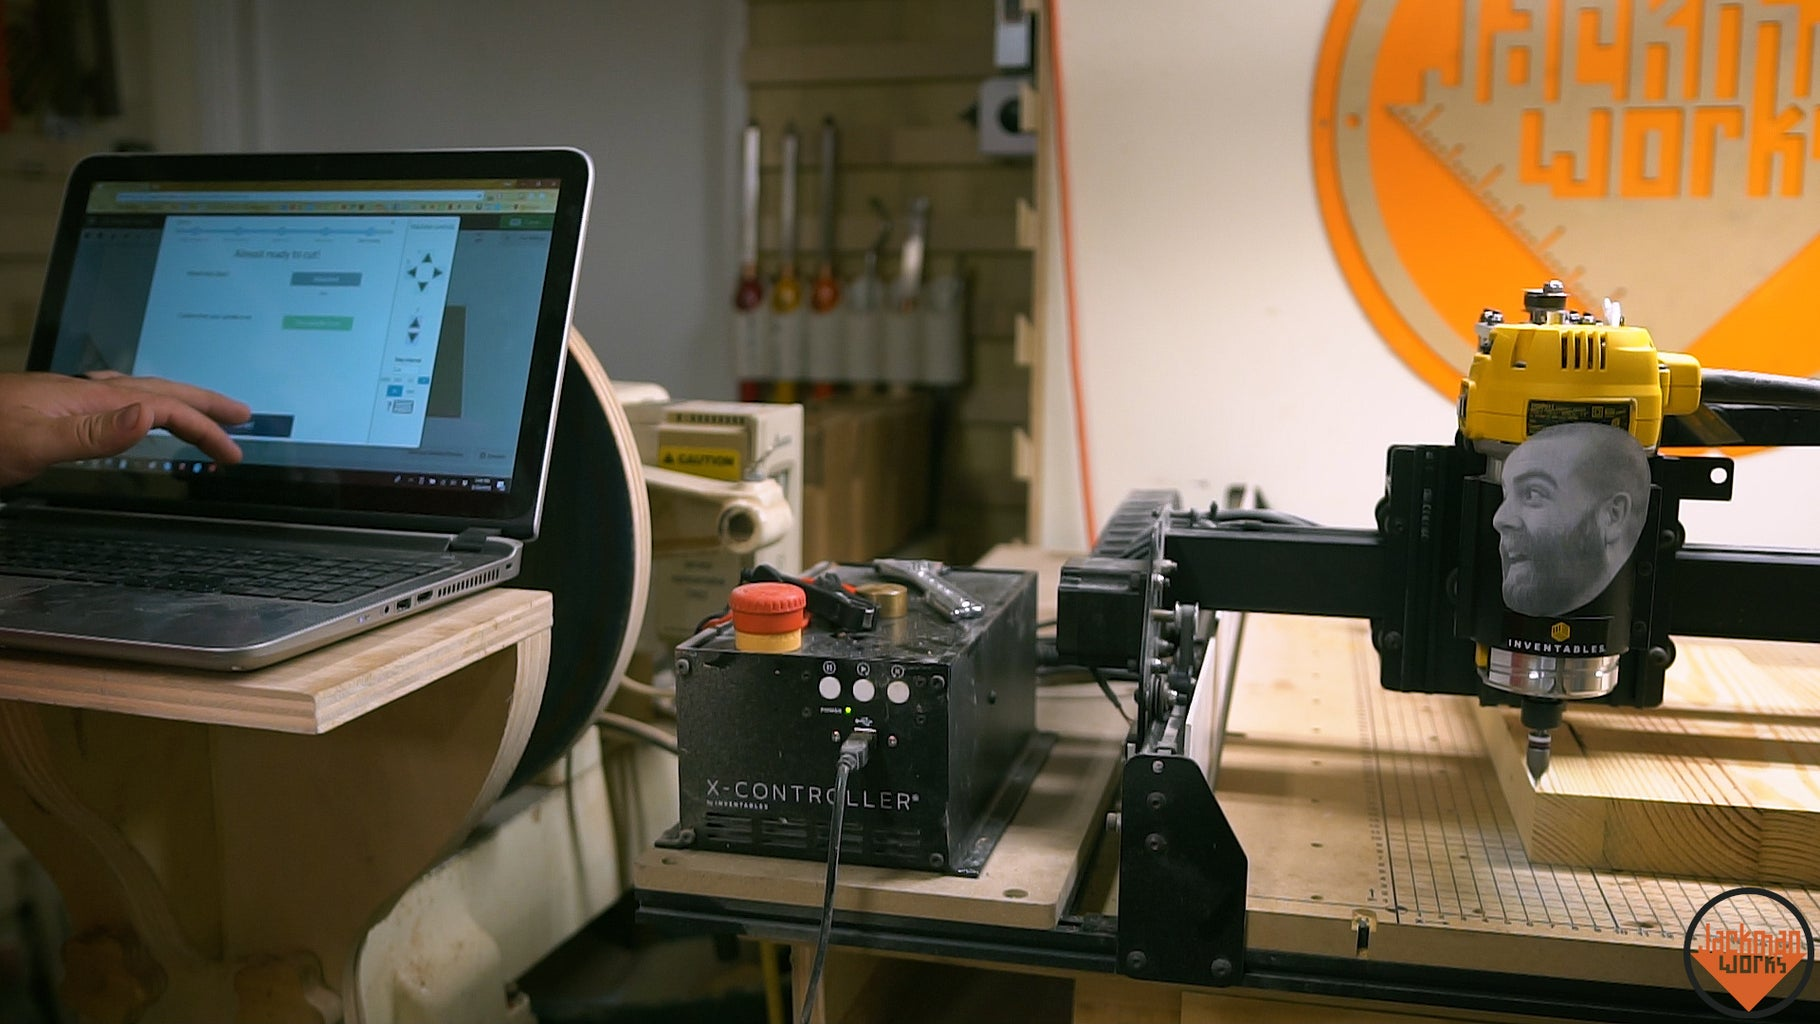 Booting Up the CNC (X-Carve)